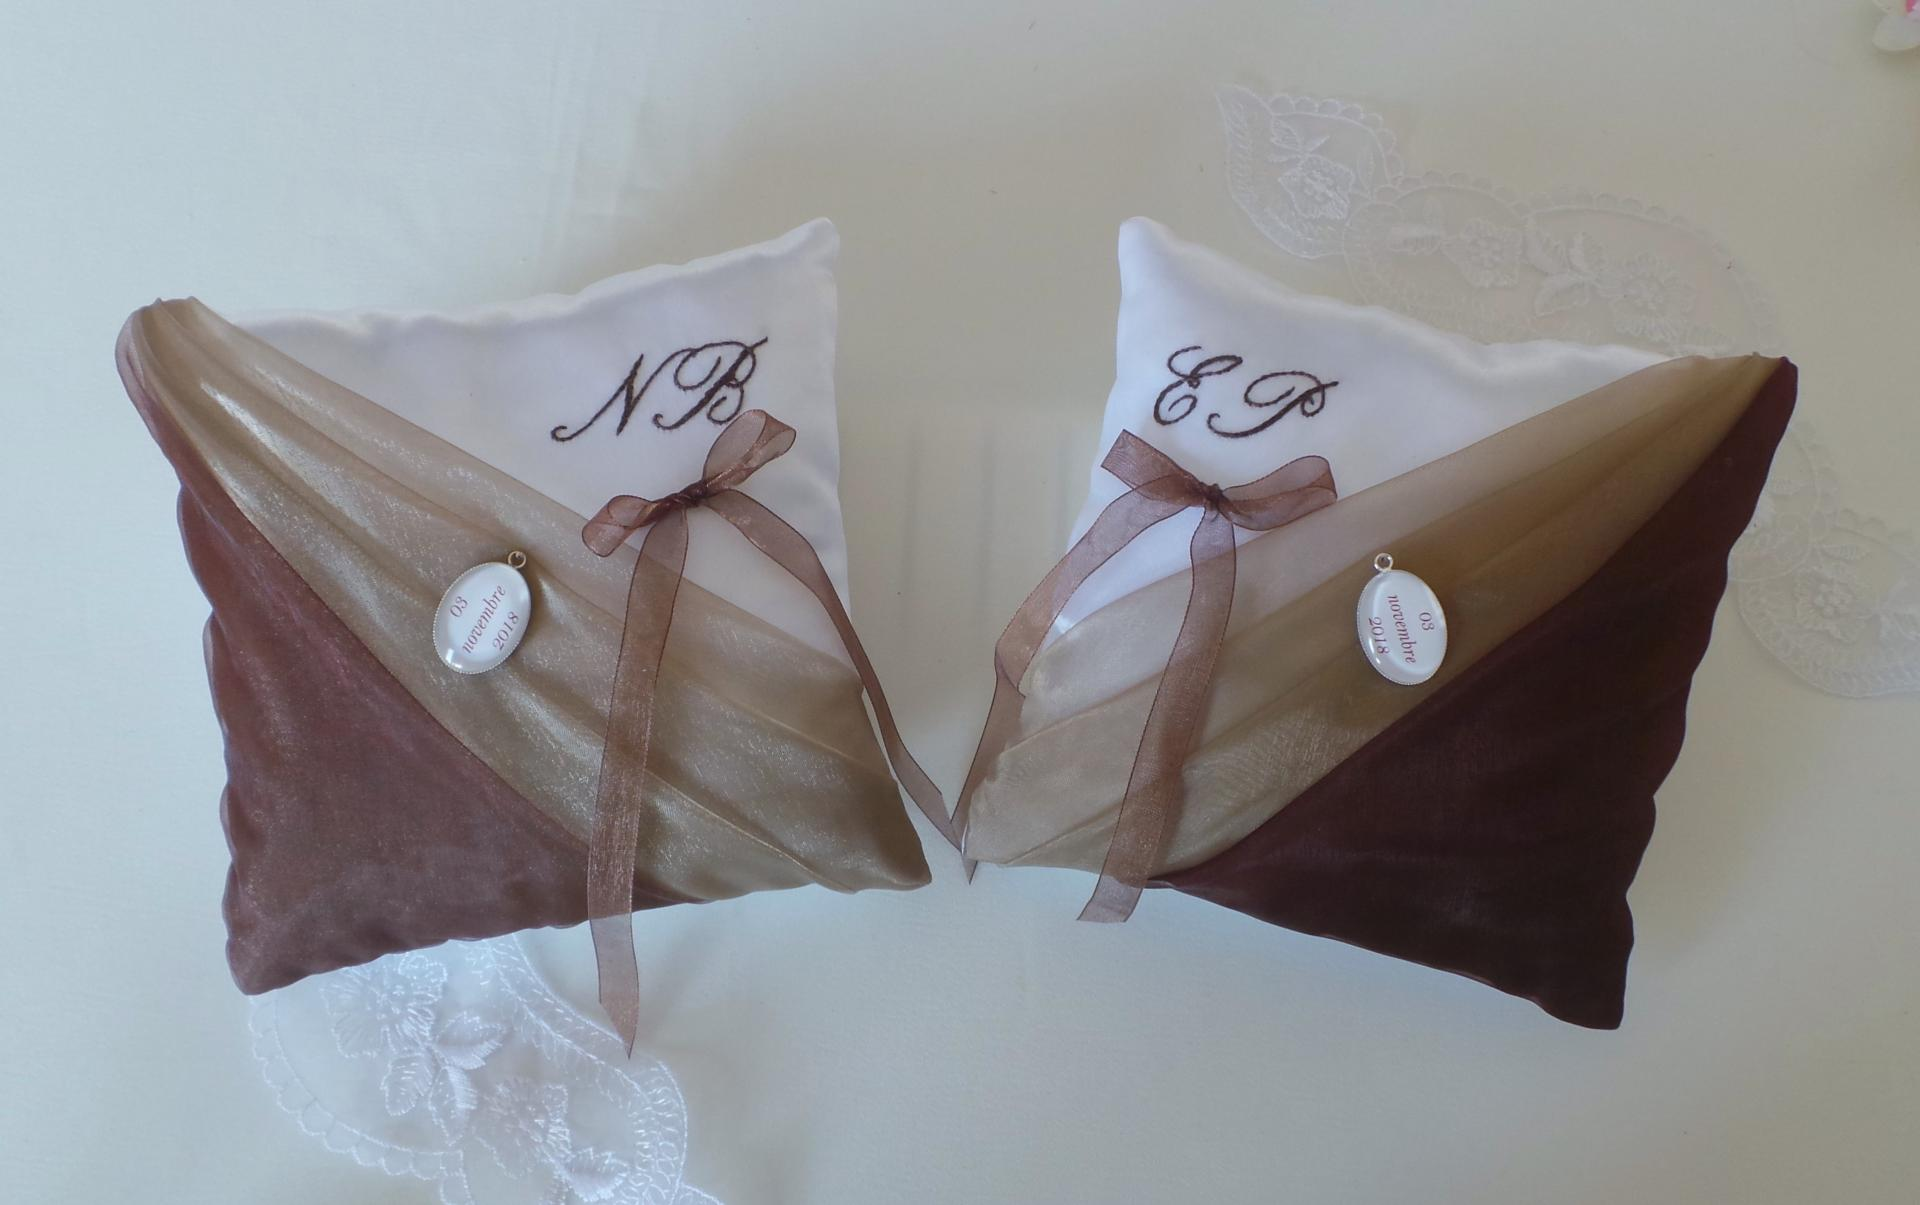 Duo coussin mariage personnalise